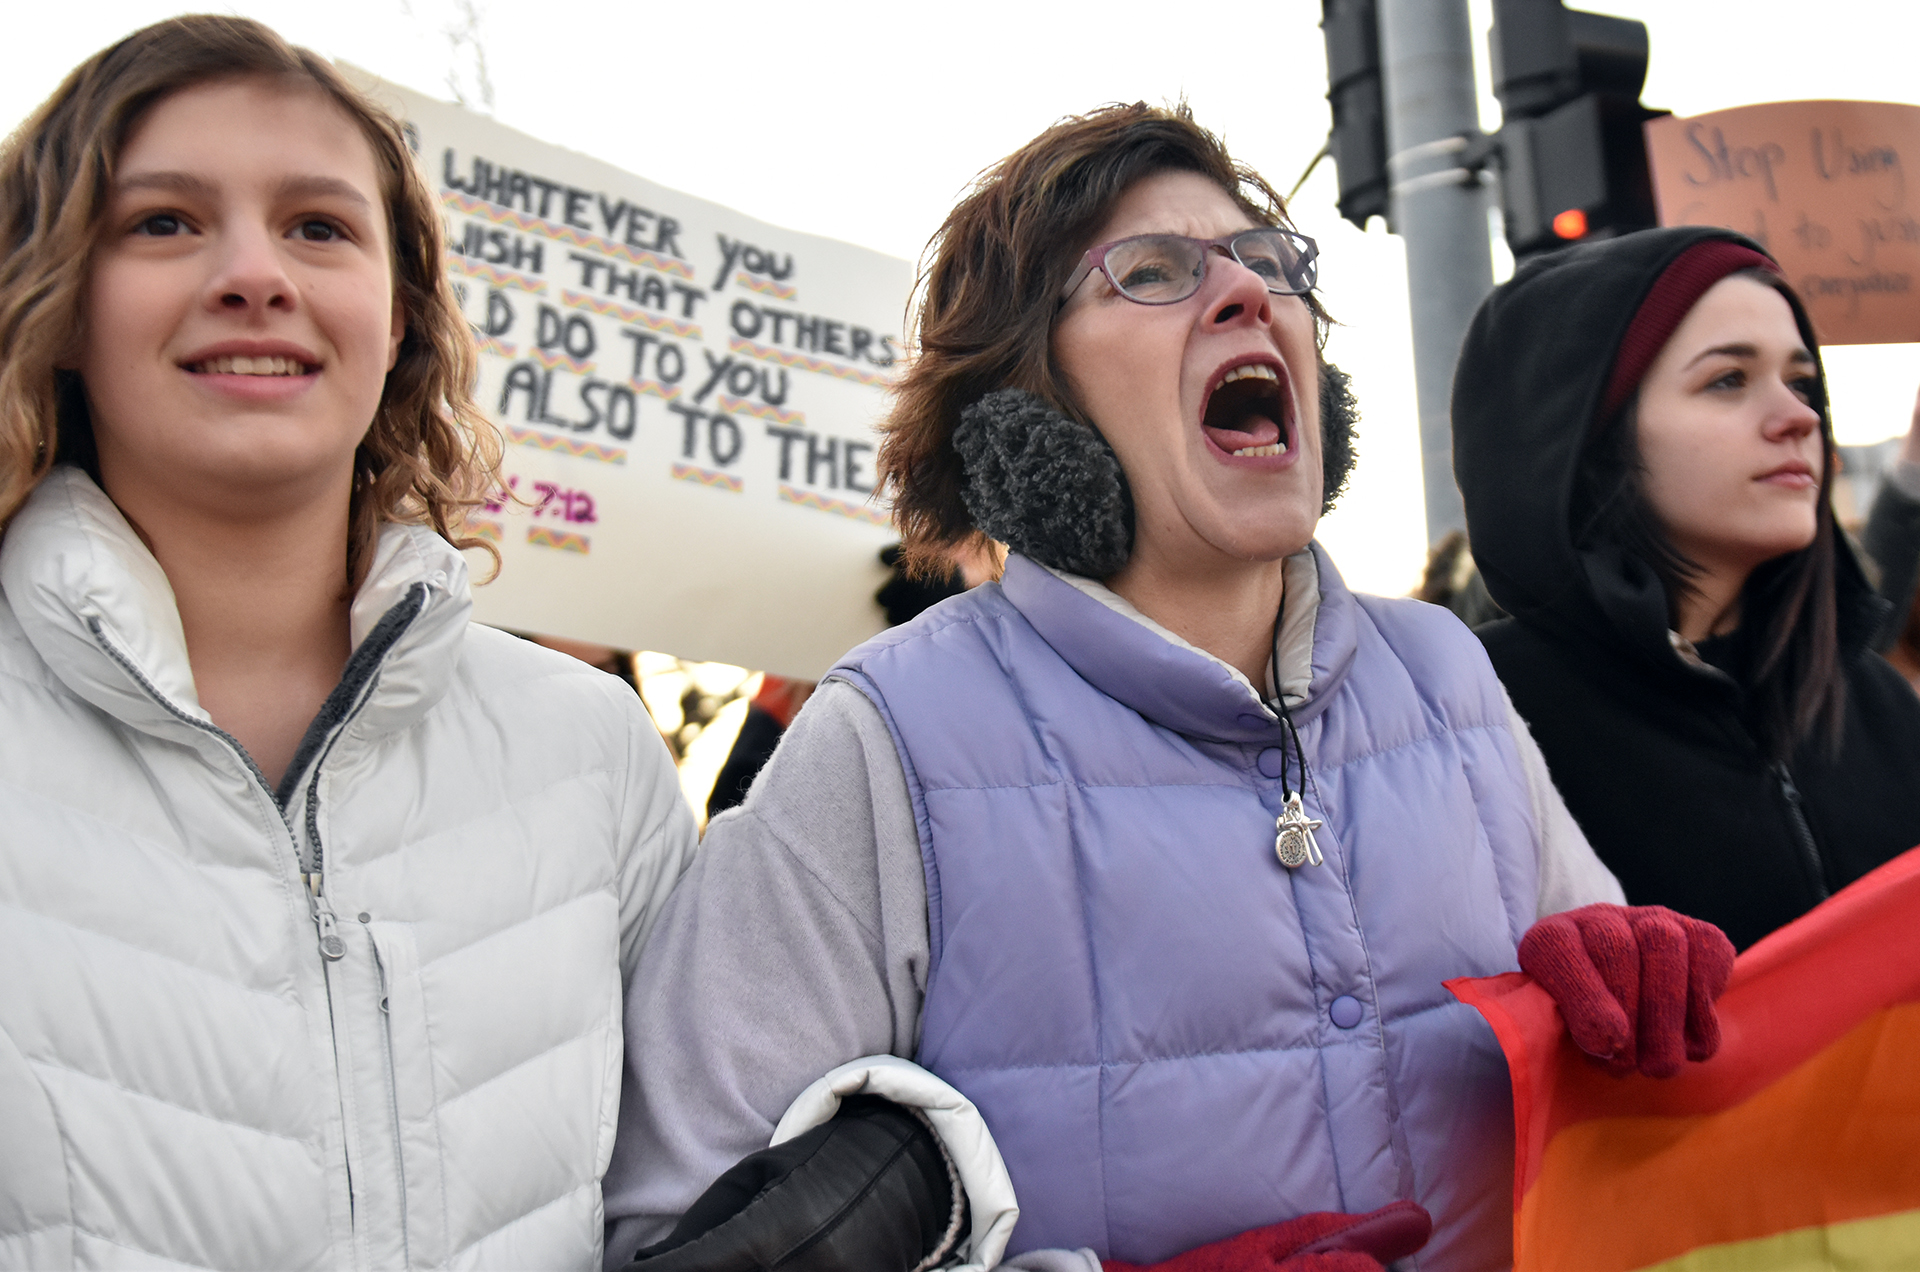 A woman defends her views to the Westboro Baptist protesters across the street. Photo by Lucy Morantz